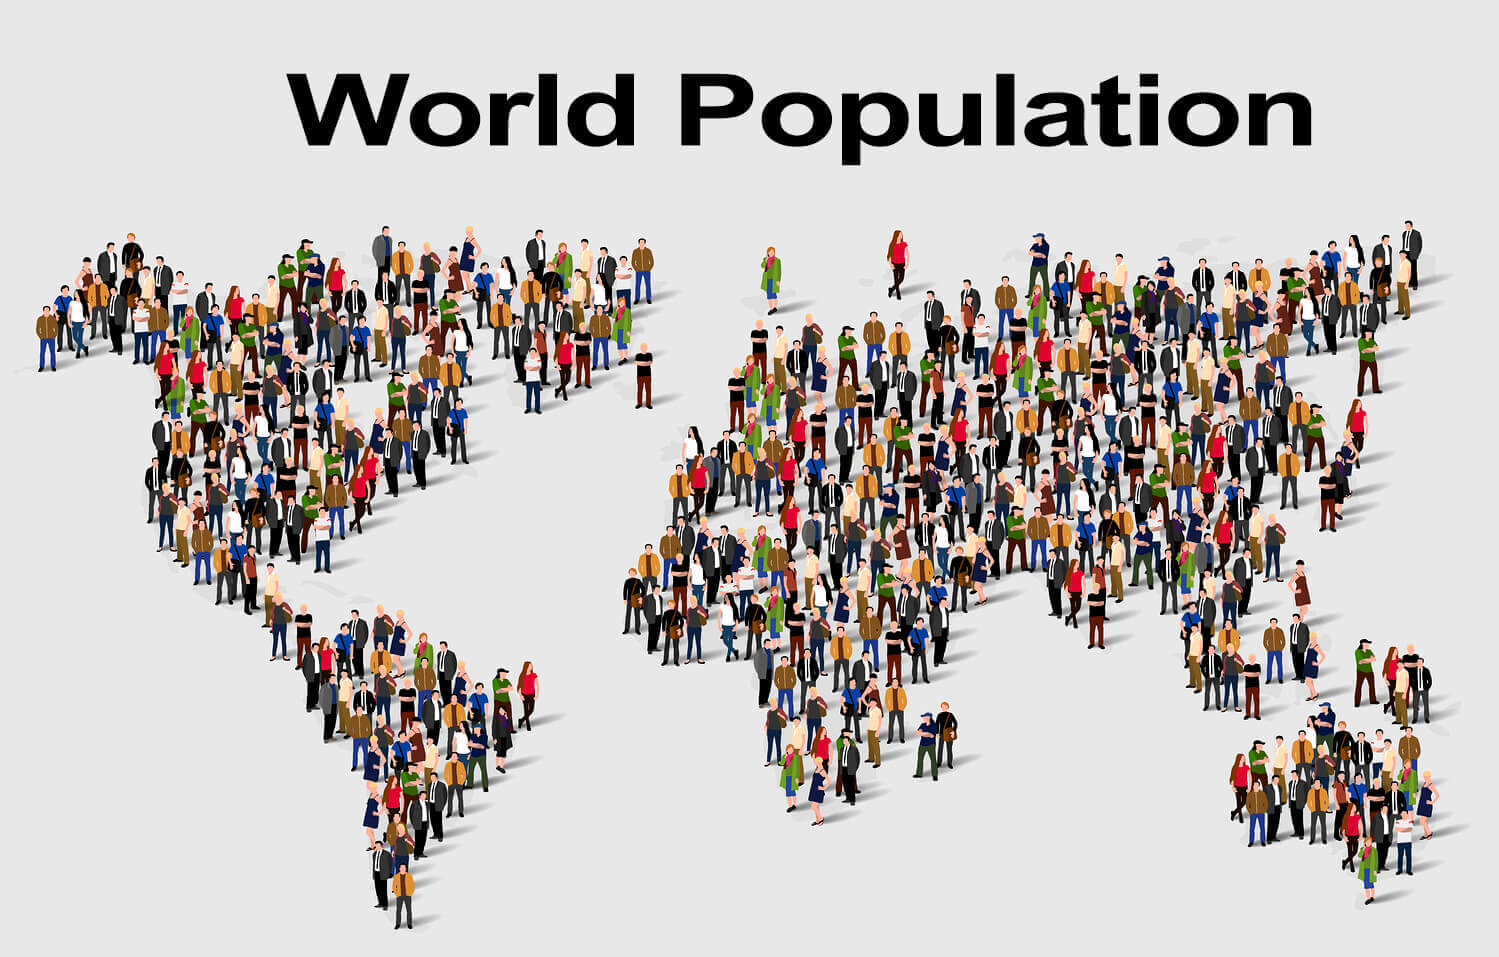 the world overpopulation The demographic future for the us and the world looks very different than the recent past growth from 1950 to 2010 was rapid—the global population nearly tripled, and the us population doubled.